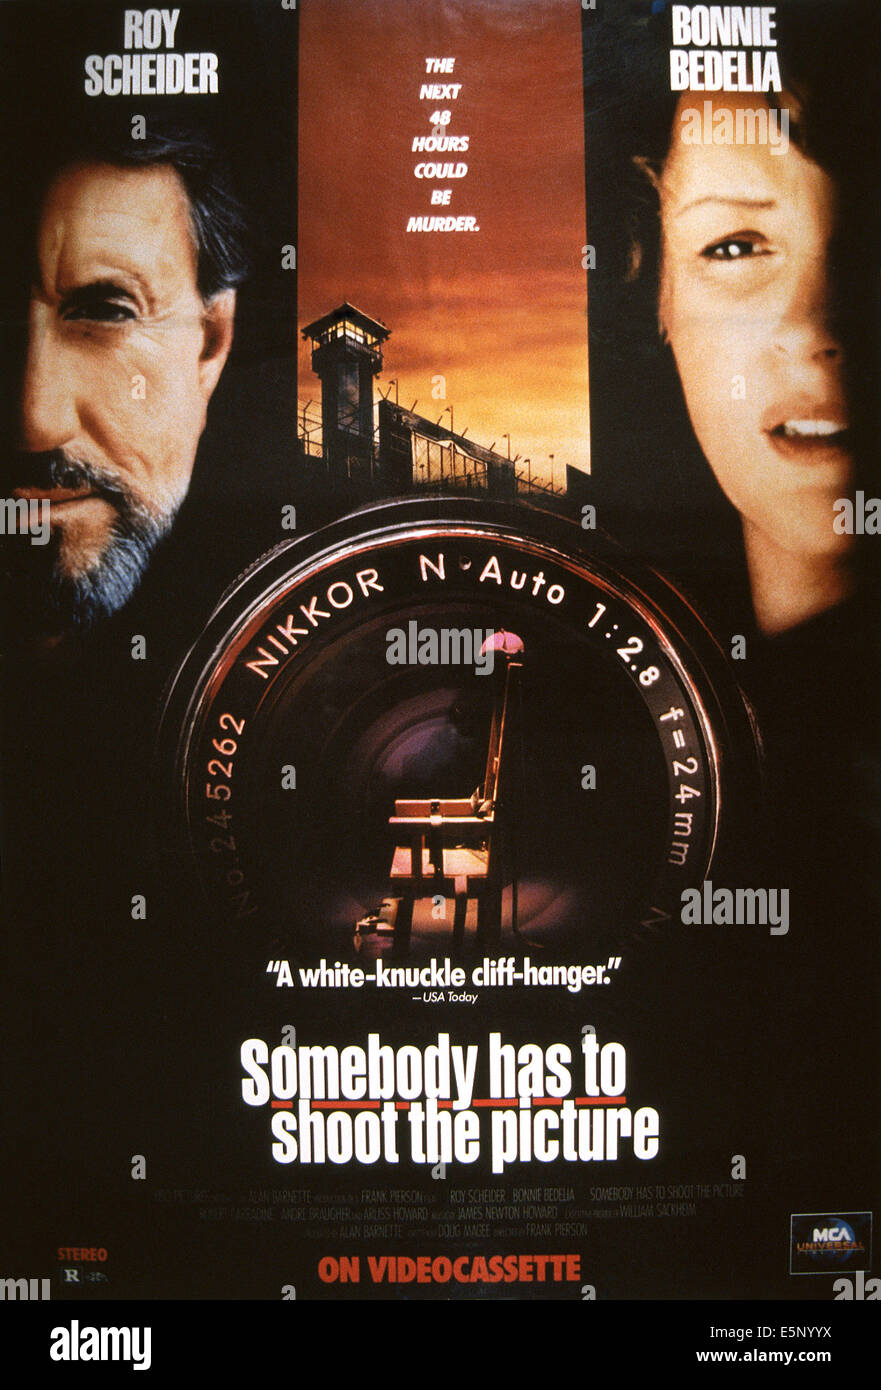 SOMEBODY HAS TO SHOOT THE PICTURE, US poster, from left: Roy Scheider, Bonnie Bedelia, 1990, © HBO/courtesy - Stock Image